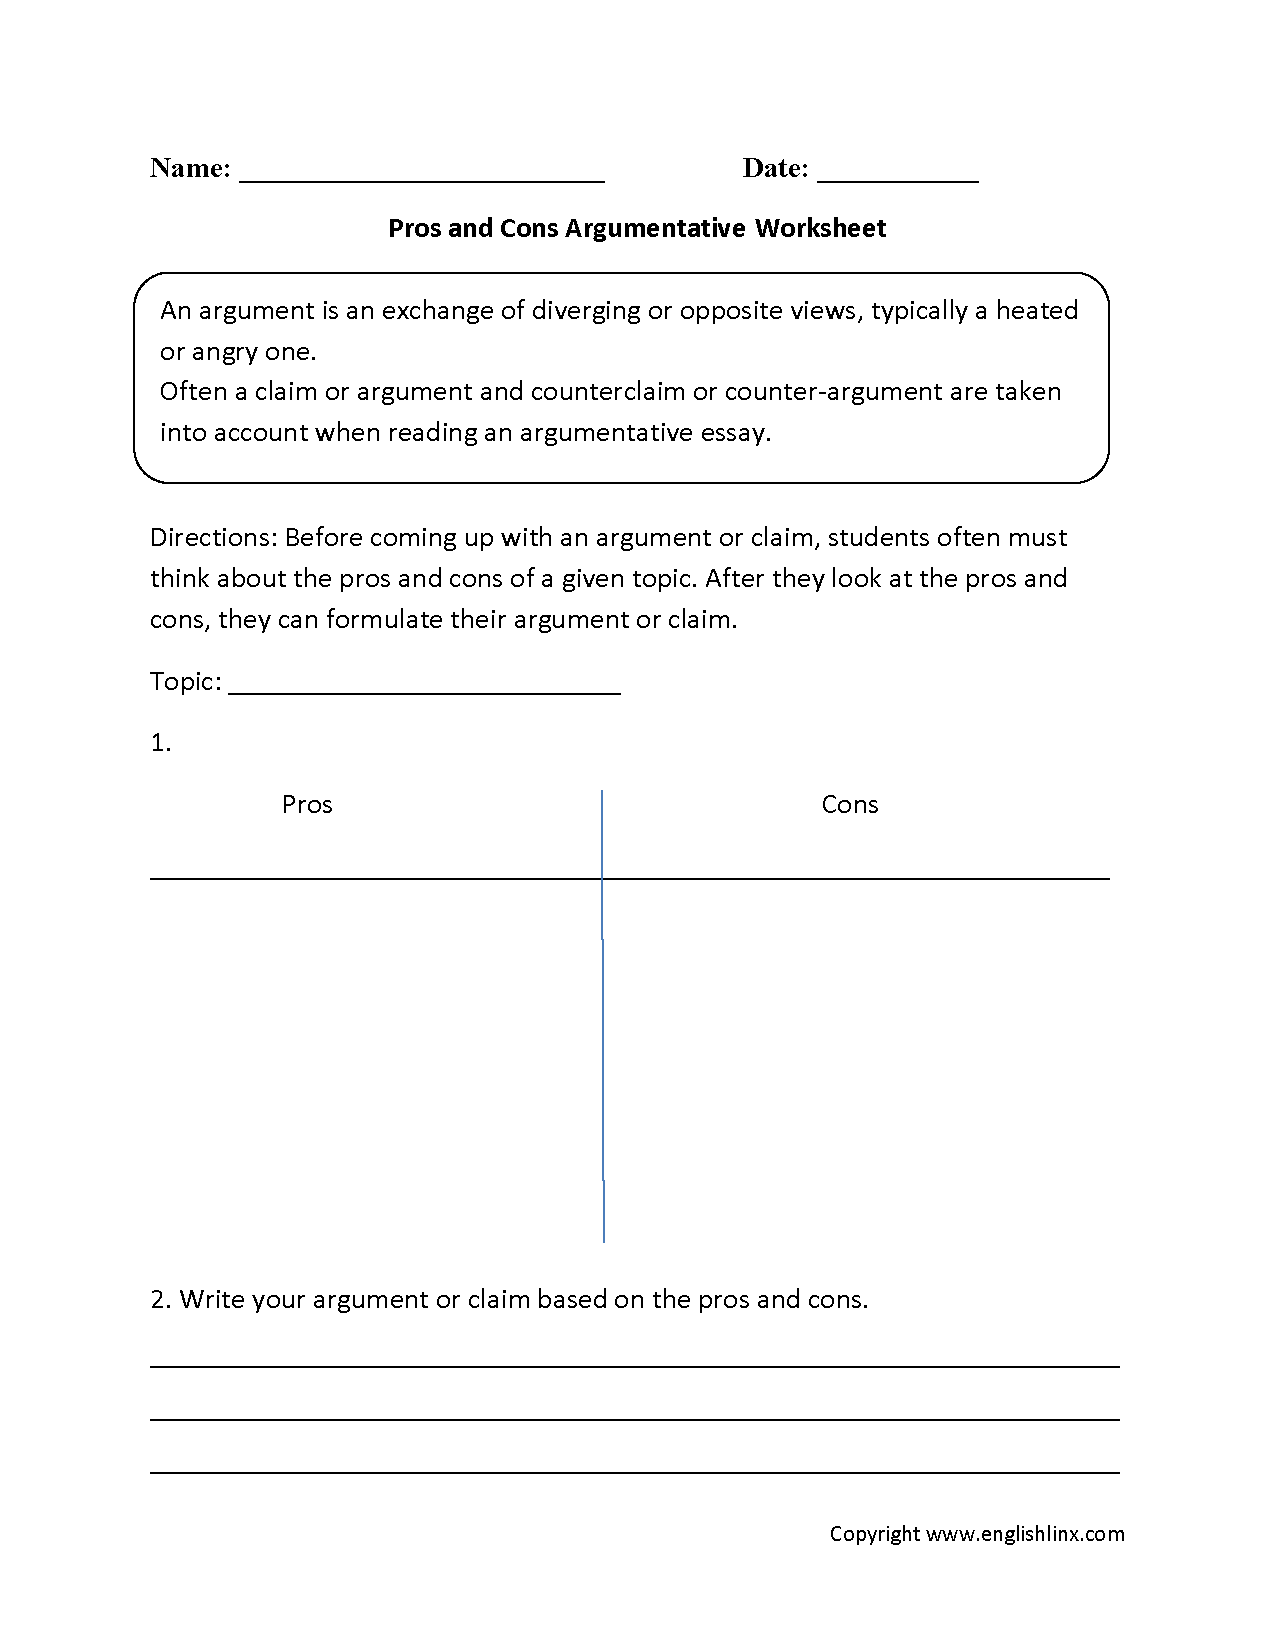 reading worksheets argumentative worksheets pros and cons argumentative worksheets